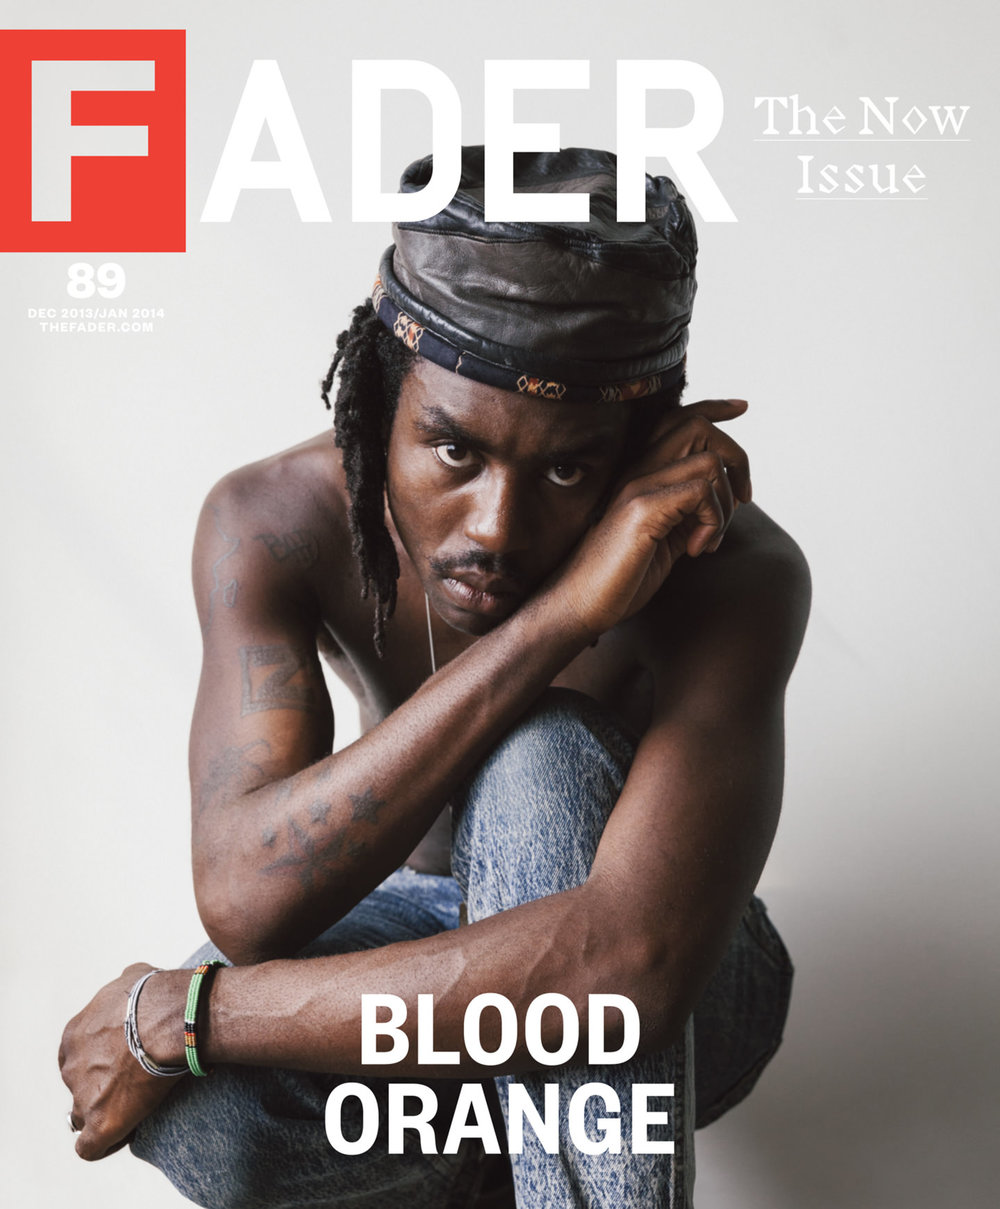 "<a href=""http://www.thefader.com/2013/11/19/blood-orange-hitting-the-right-notes"" target=""_Blank"">FADER</a>"